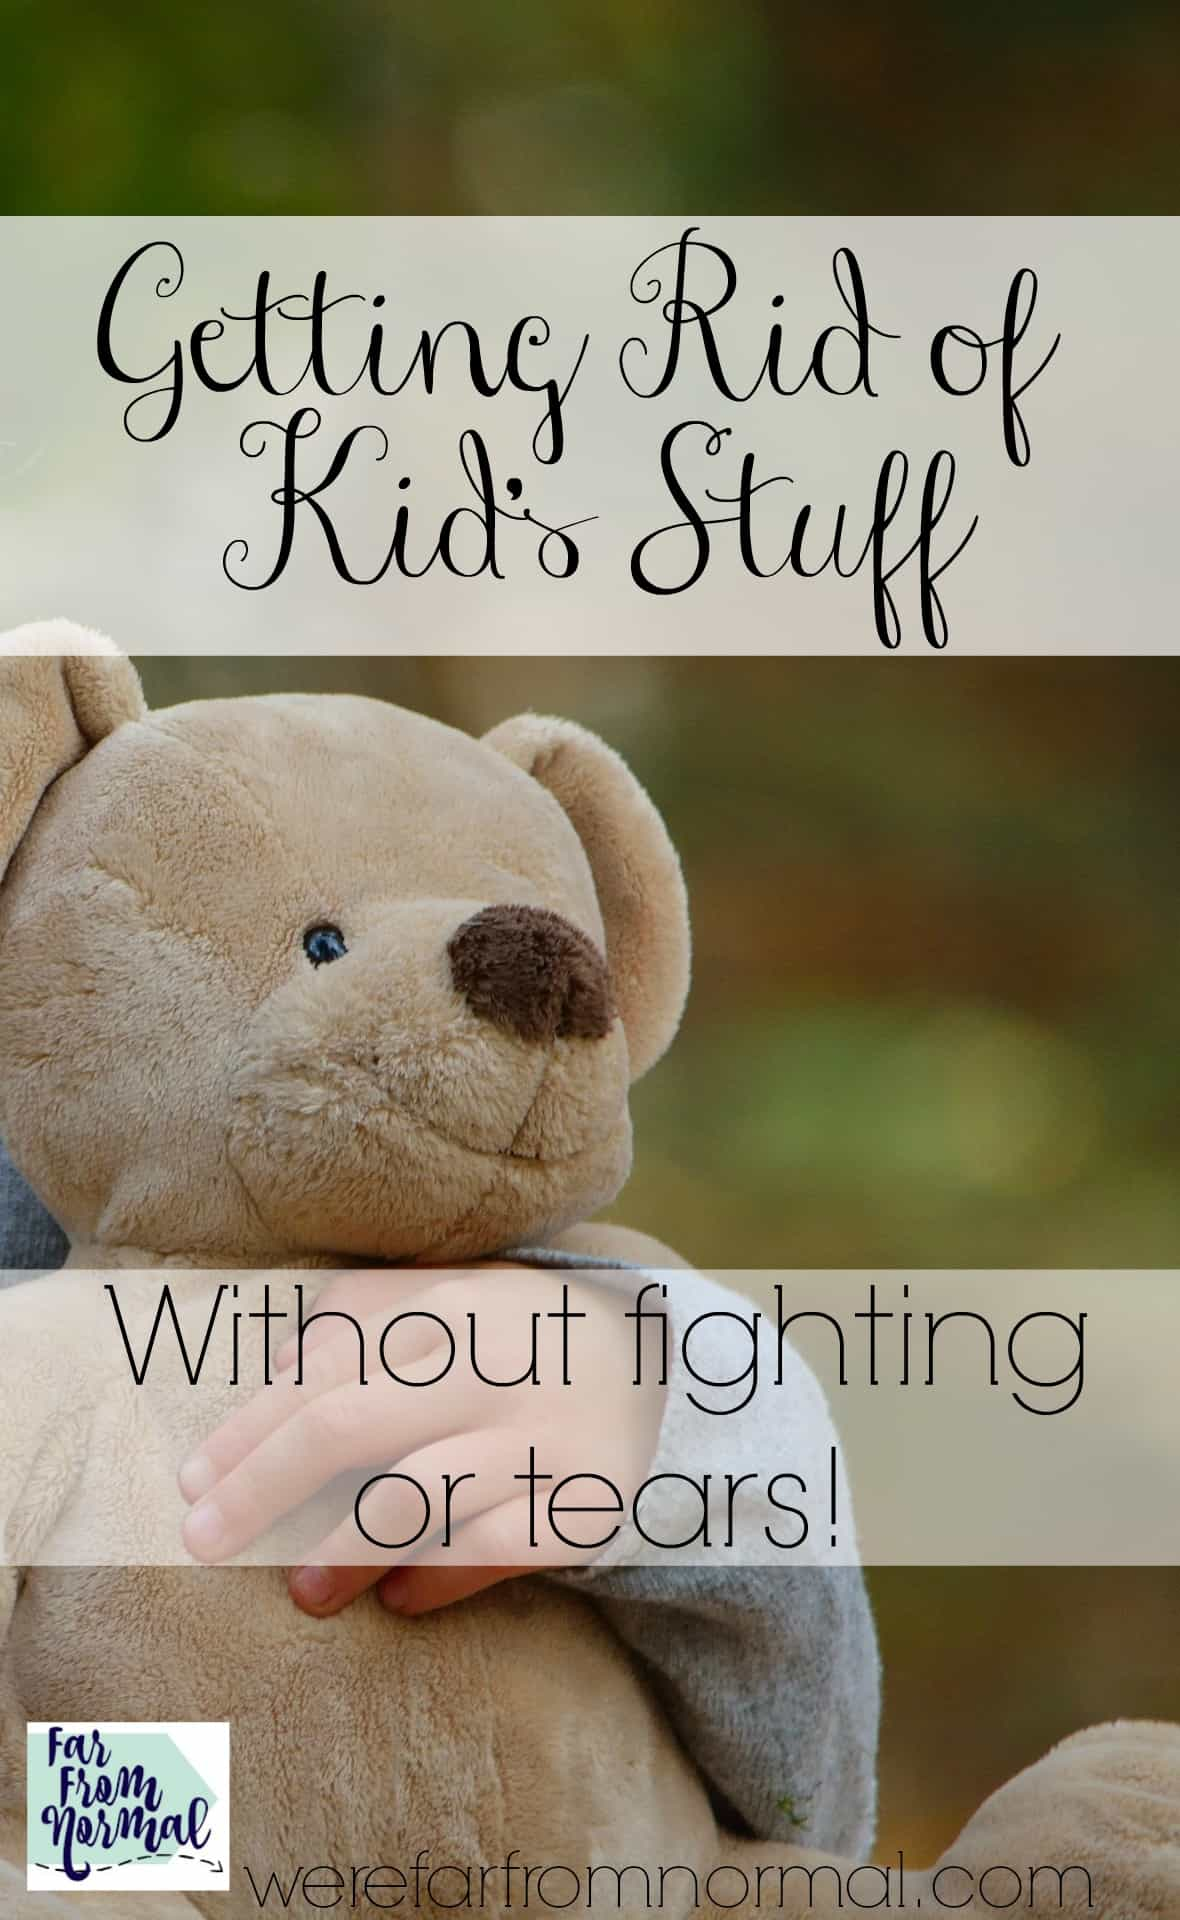 Getting Rid of Kid's Stuff (without fighting or tears!)